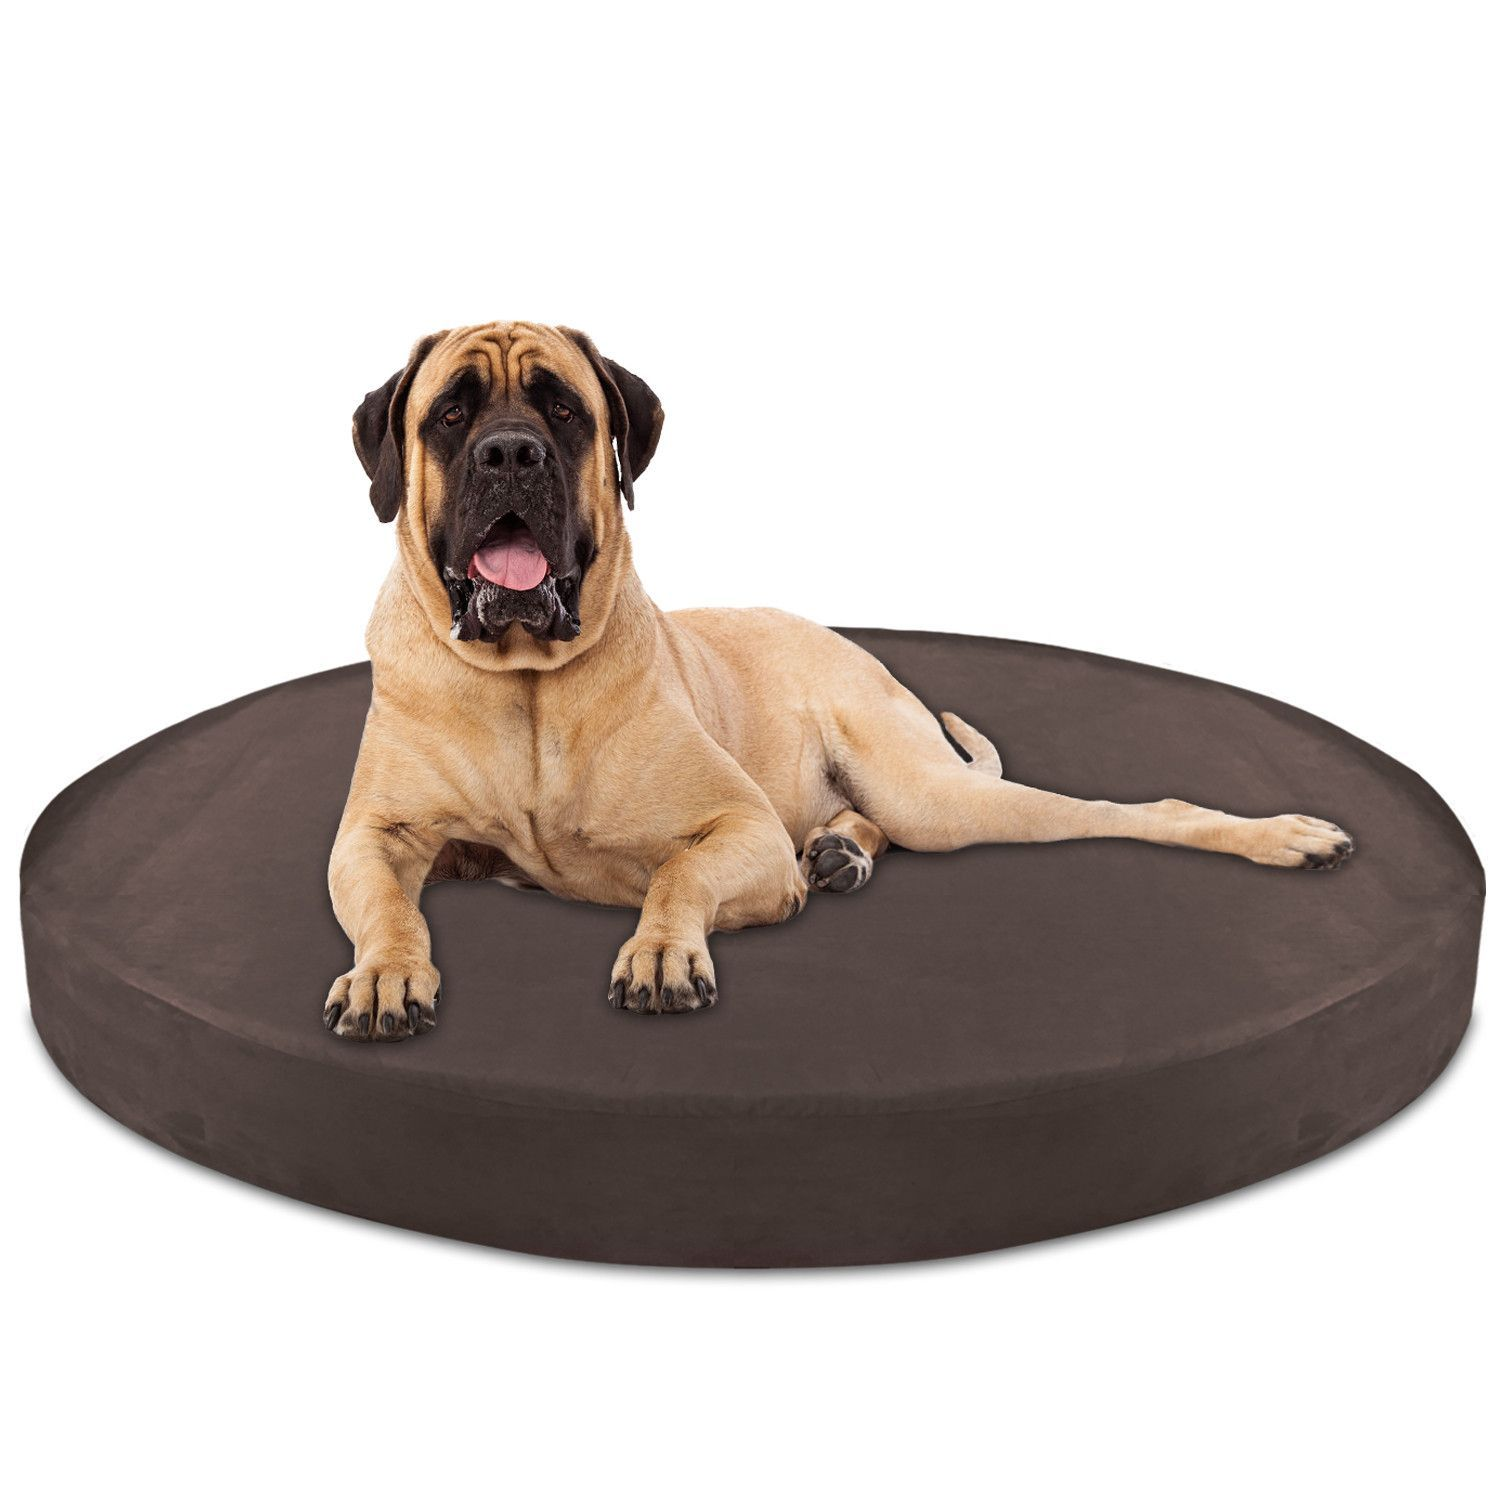 Dog Bed Round Deluxe Orthopedic Memory Foam Extra Large